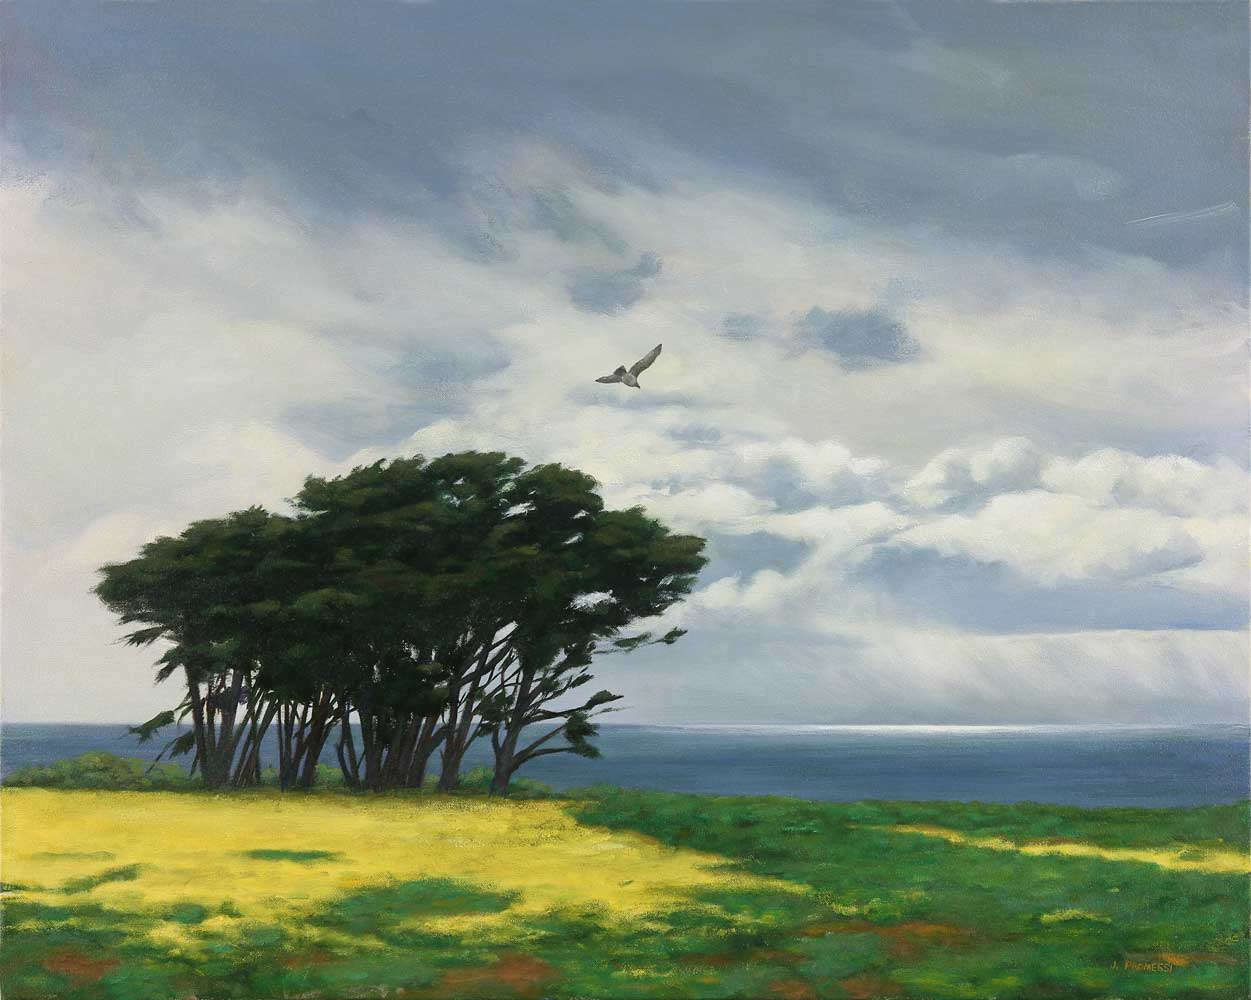 Lone Gull, Painting by Jim Promessi